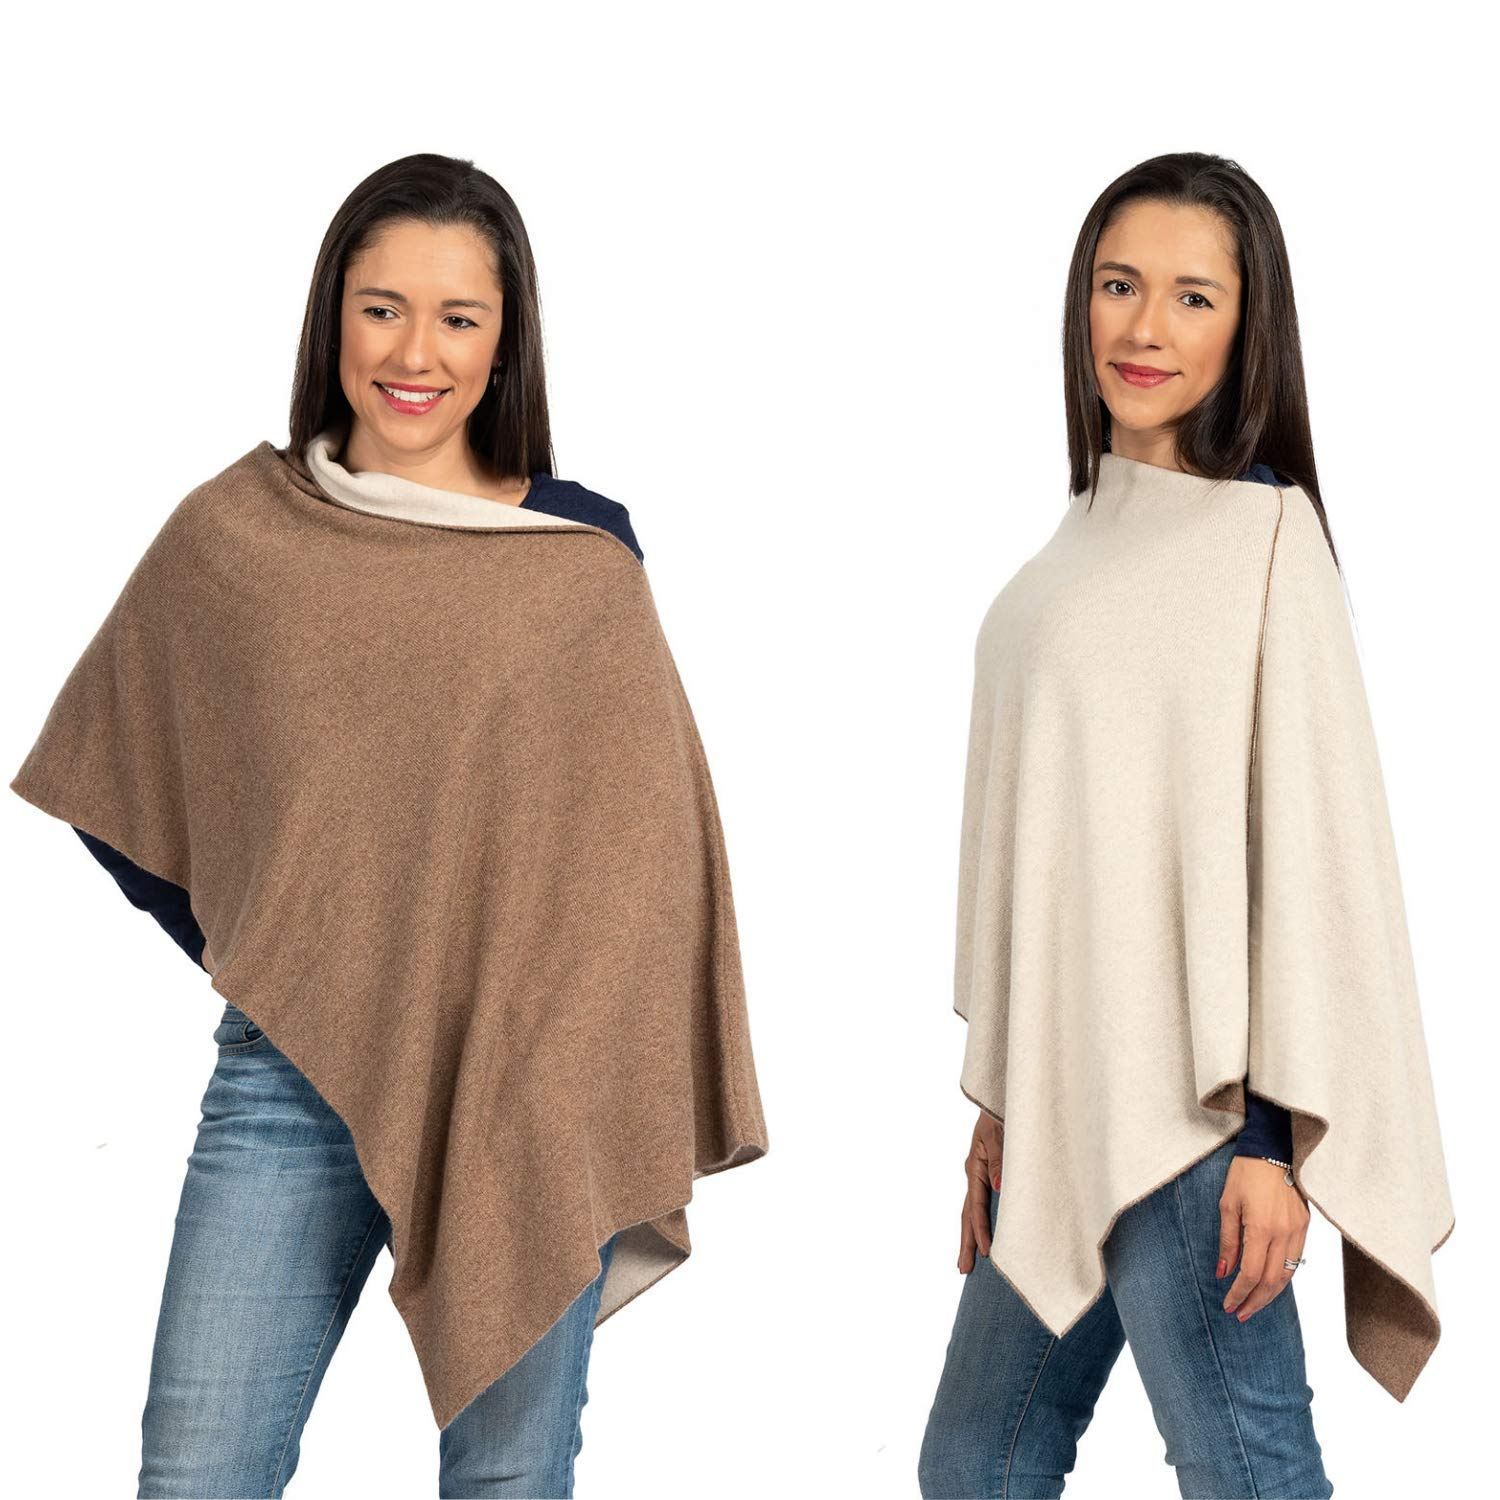 Cashmere Reversible Poncho Dress Topper - 100% Pure Luxury Knit - Ultra Soft and Warm with Beautiful Silk Keepsake Gift Bag